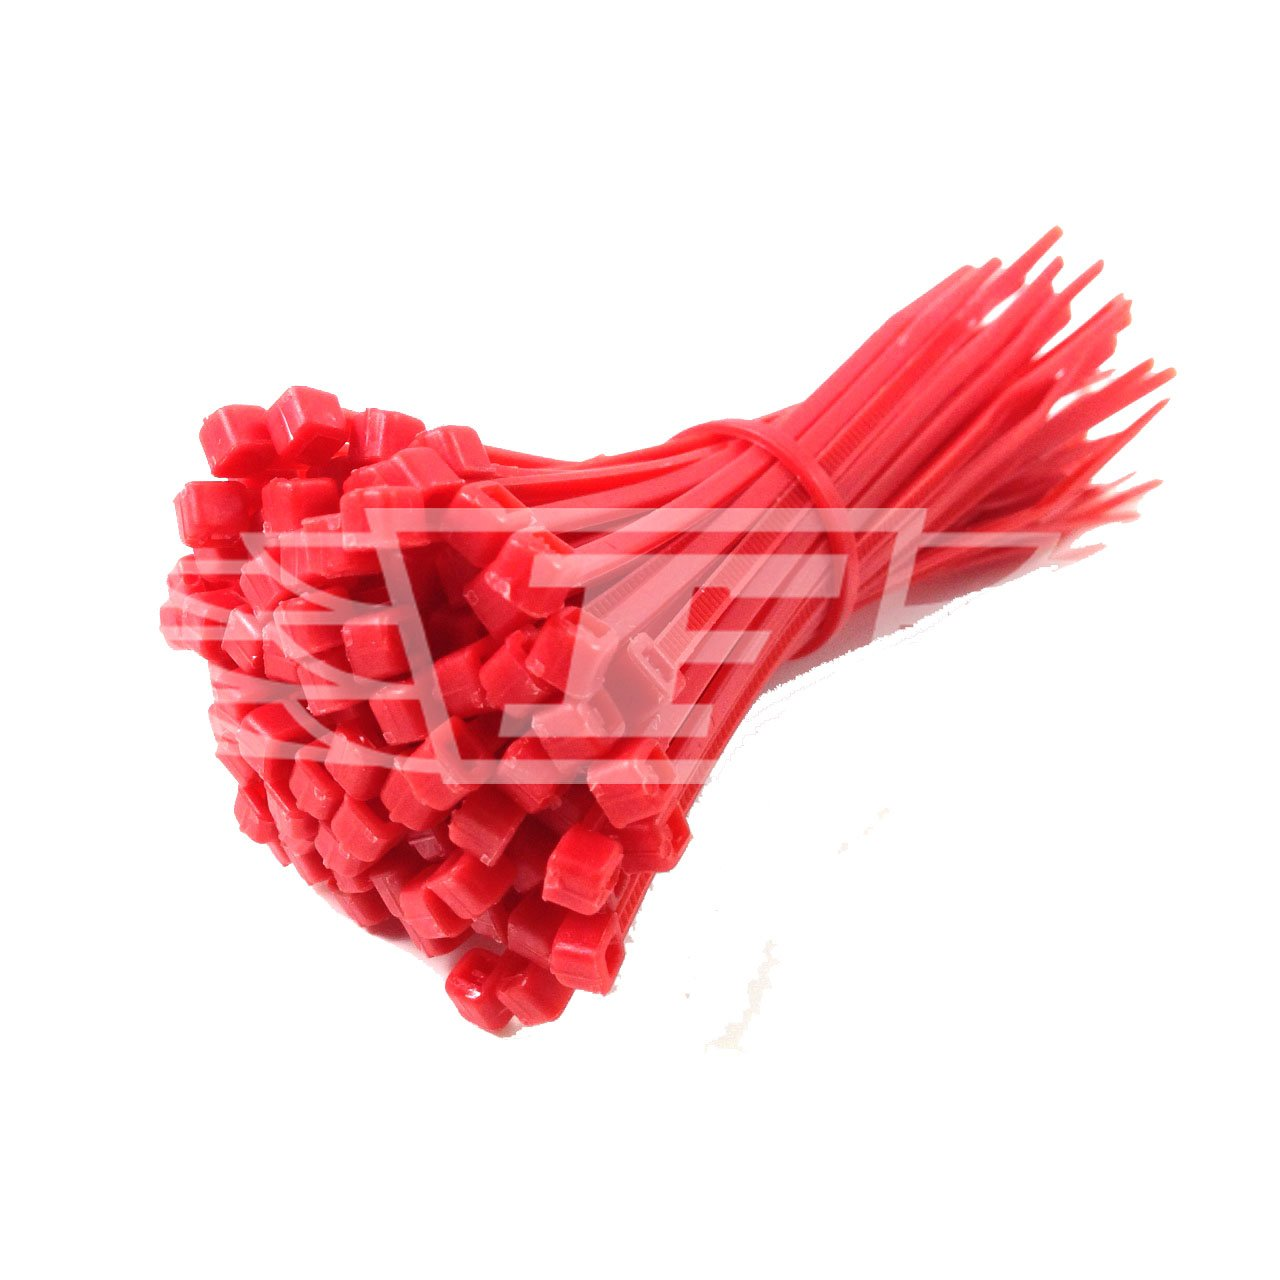 100 x CABLE TIES (Pick Your Colour) / TIE WRAPS / ZIP TIES, 2.5mm x 100mm + FREE UK DELIVERY (Purple) Falcon Workshop Supplies